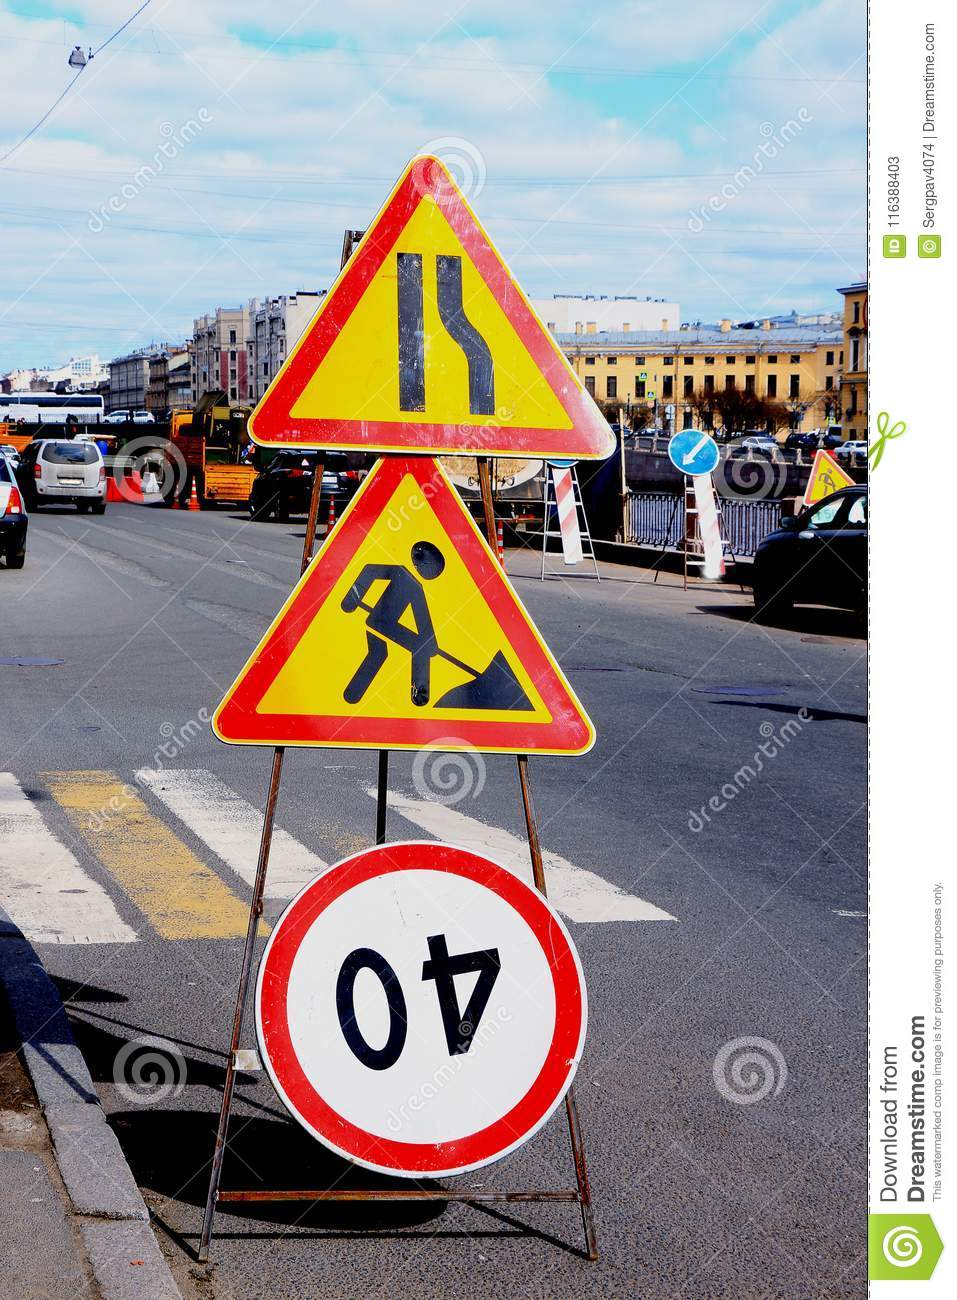 That Upside Down Traffic Sign Turns Out >> Road Signs Of Repair Work Stock Image Image Of Danger 116388403